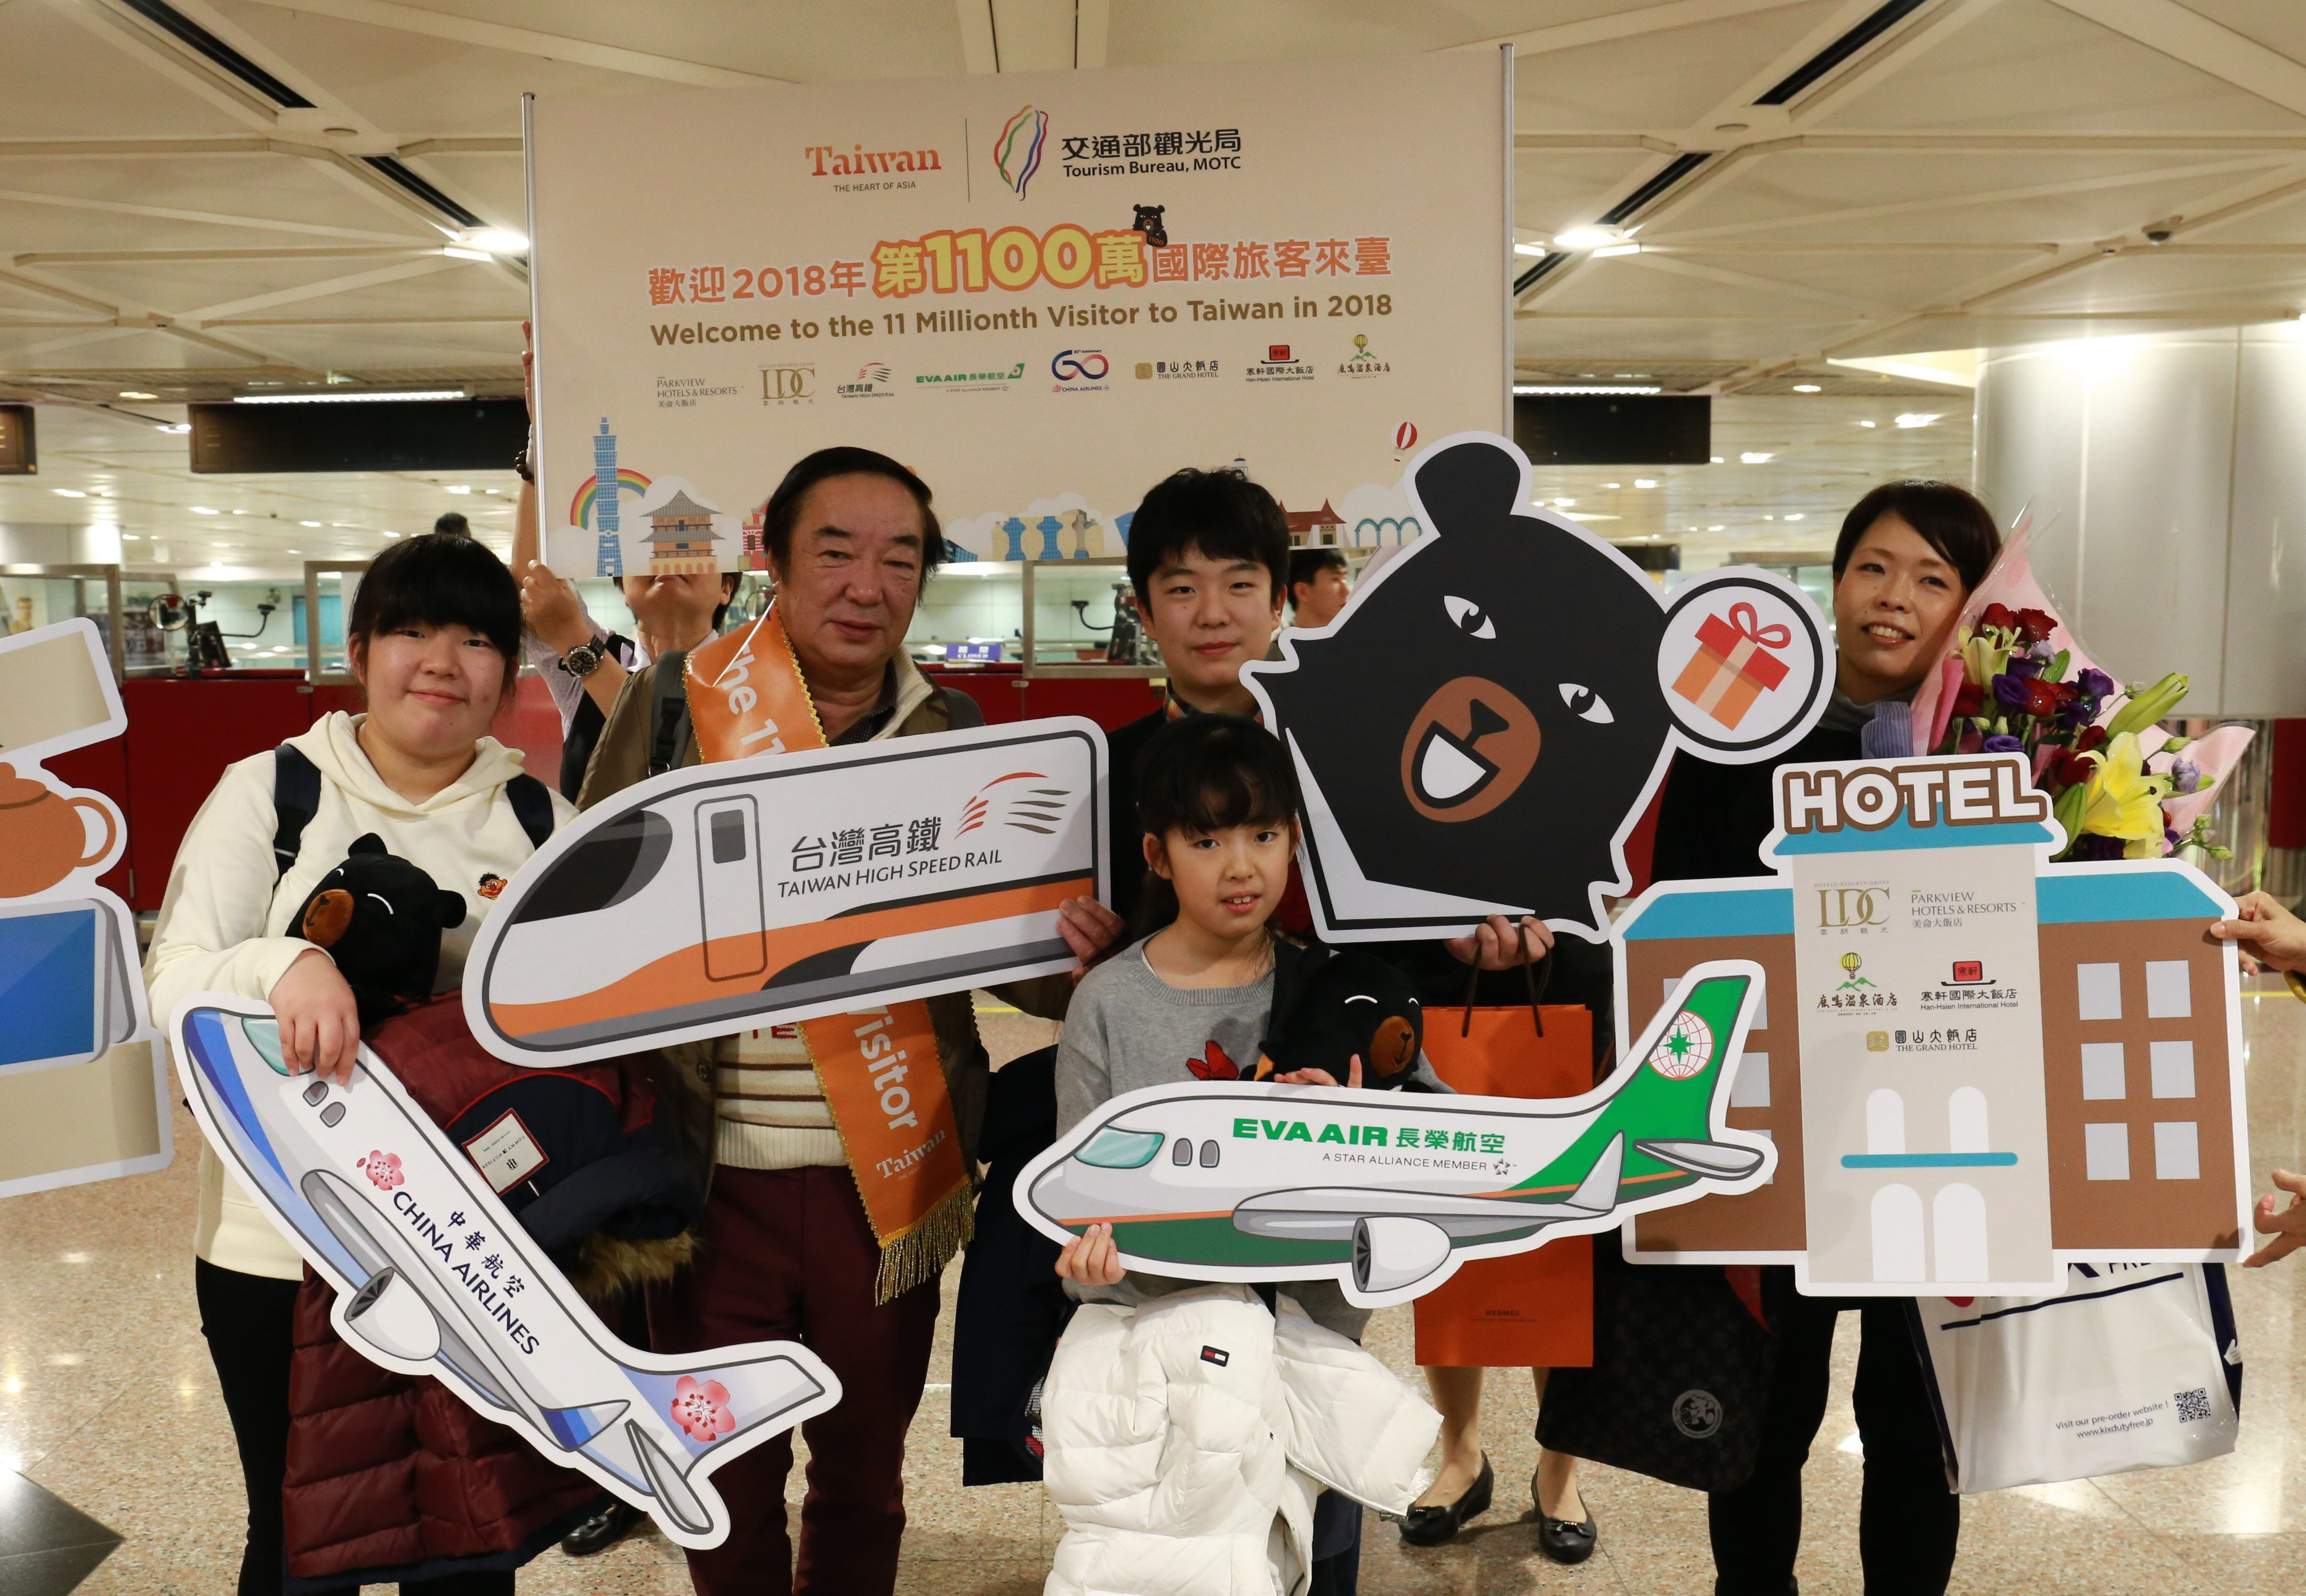 Taiwan's 11 millionth visitor of 2018 Shinobu Nishikawa (second left) and family members are all smiles Dec. 30 at Taiwan Taoyuan International Airport. (Courtesy of Tourism Bureau)